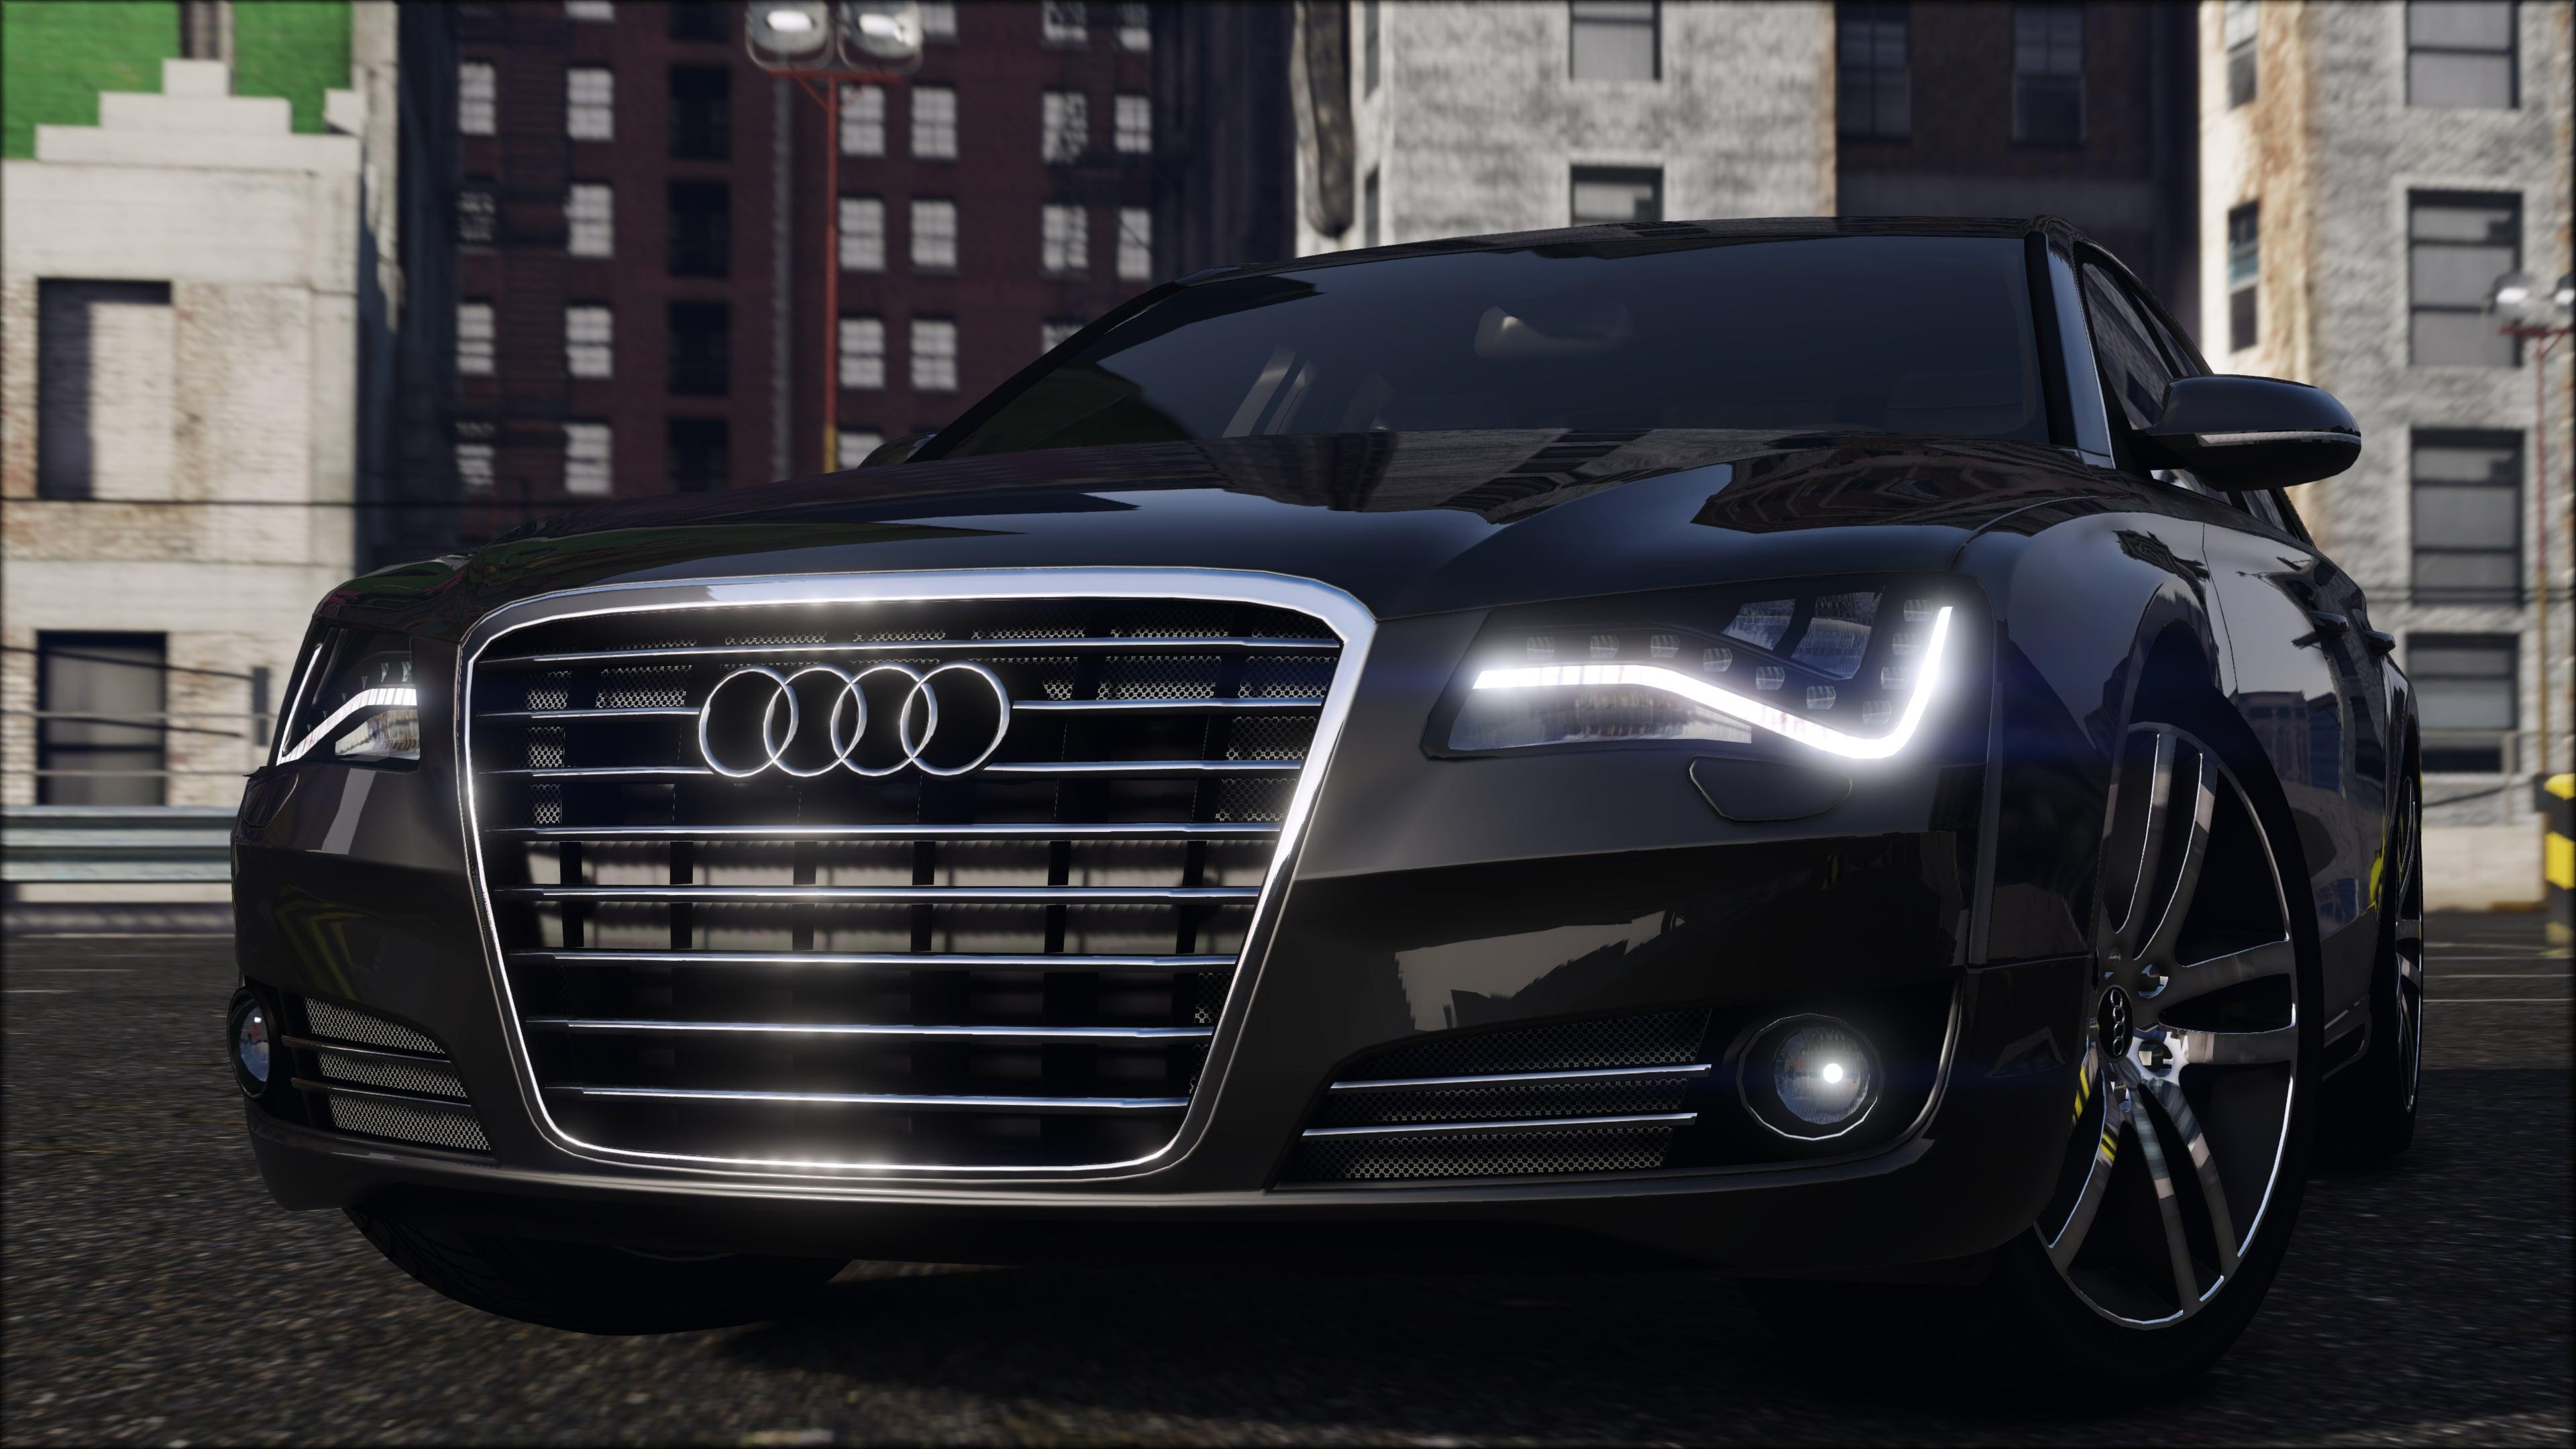 2012 audi a8l w12 add on replace gta5. Black Bedroom Furniture Sets. Home Design Ideas